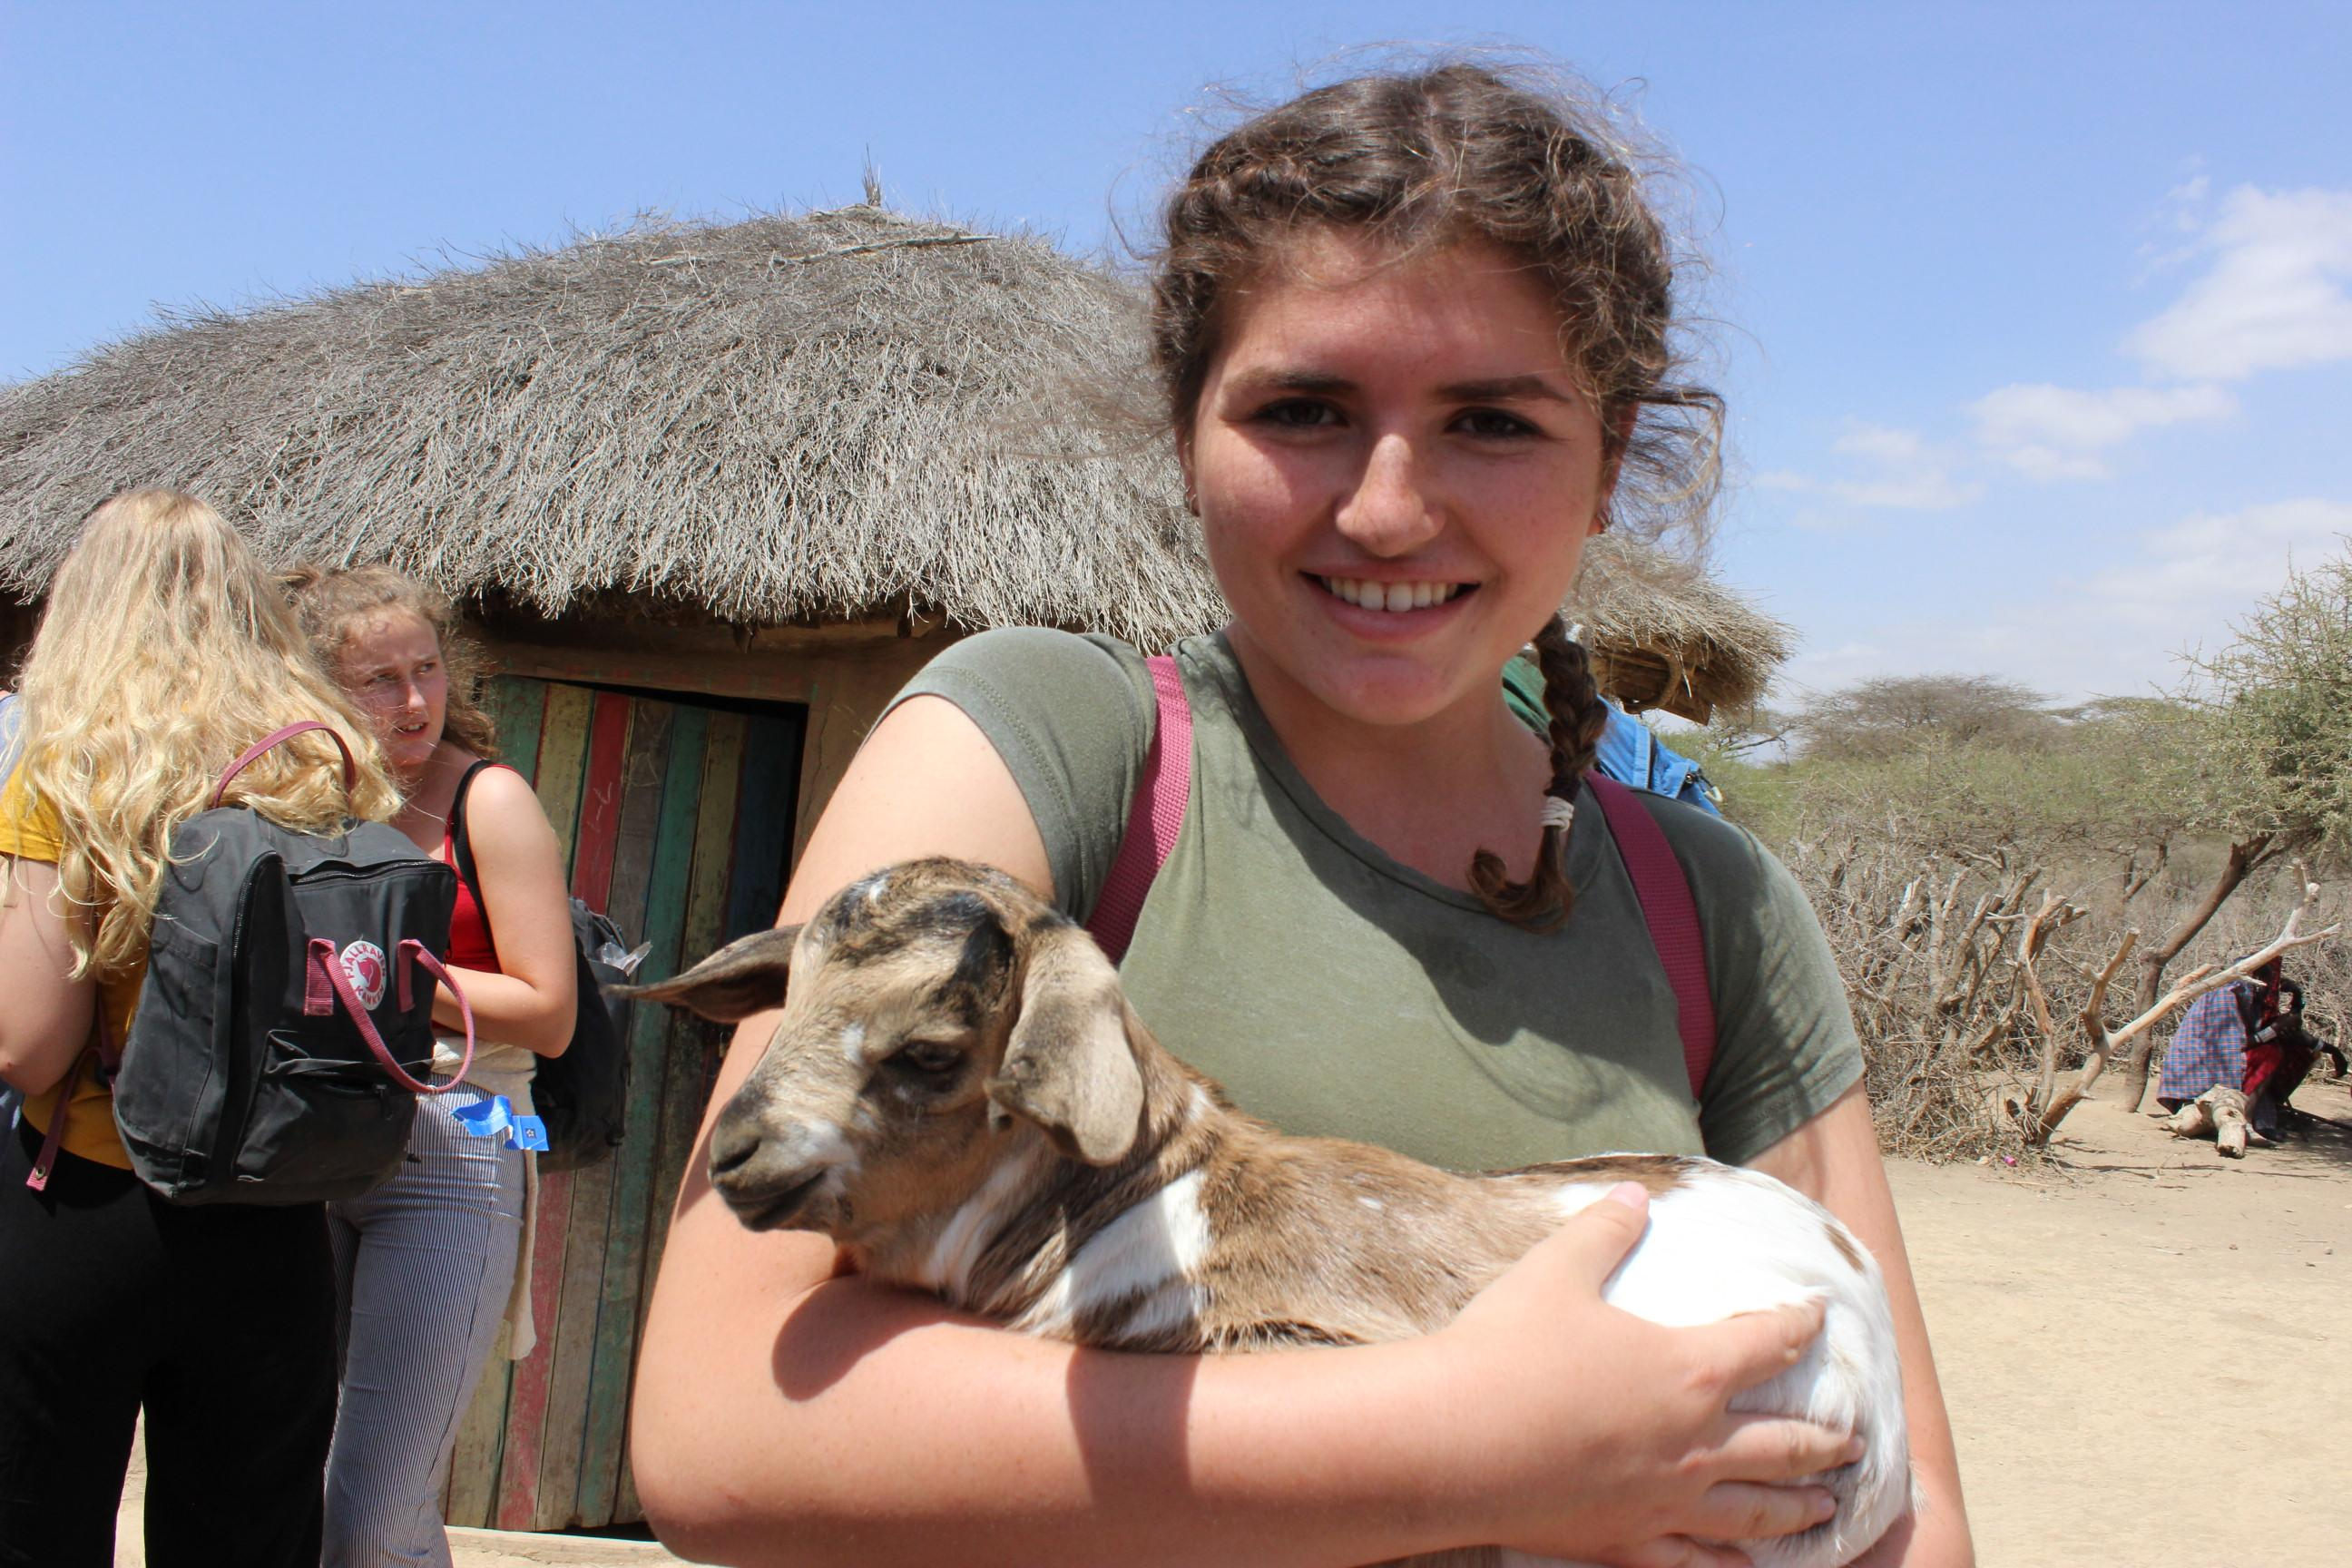 Young Female Community Volunteer poses for a photo holding a baby goat during her volunteering project in Tanzania.